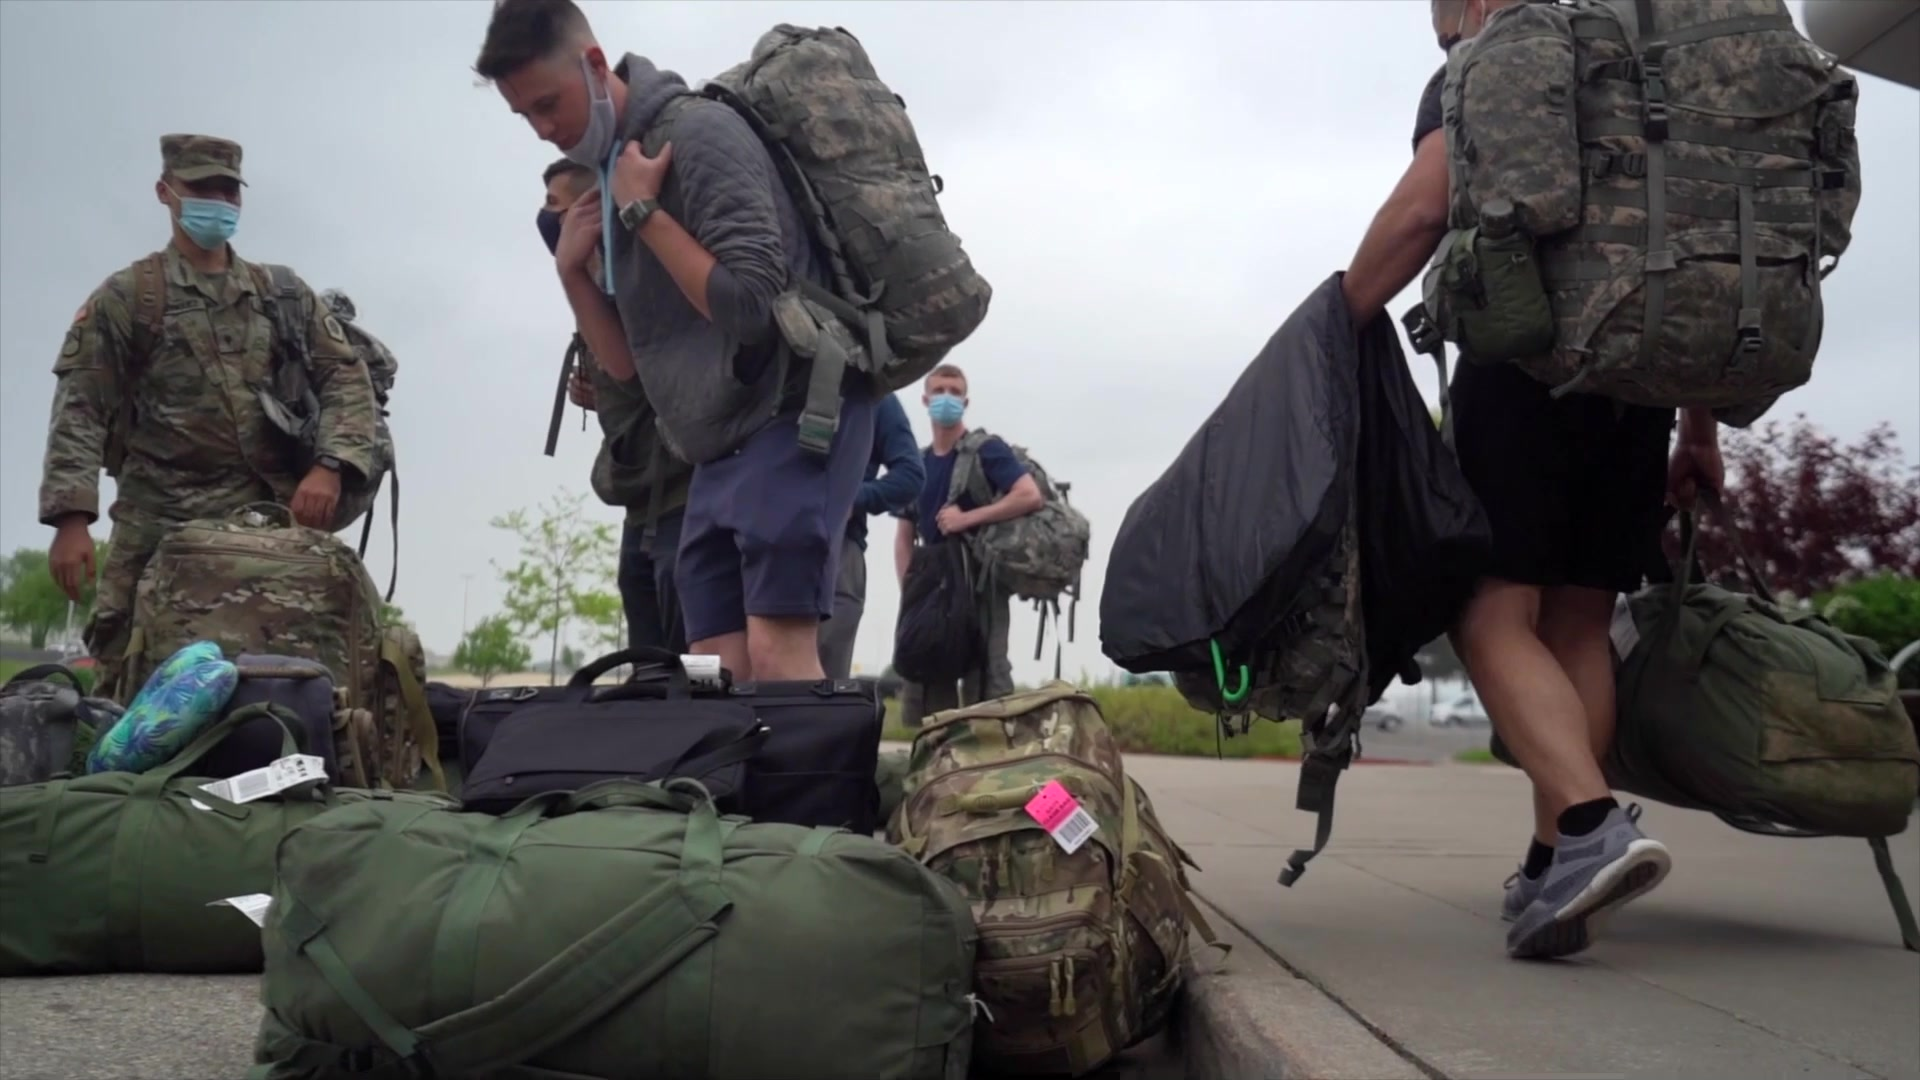 """U.S. Army Reserve Soldiers, arriving at La Crosse Regional Airport during the 2021 U.S. Army Reserve Best Warrior Competition at Fort McCoy, Wisconsin, May, 19. Approximately 80 Soldiers from across the nation traveled to Fort McCoy, Wisconsin, to compete in the event that runs from May 19-27, 2021. The 2021 BWC is an annually-recurring competition that brings in the best Soldiers from across the U.S. Army Reserve to earn the title of """"Best Warrior"""" among their peers. Competitors are evaluated on their individual ability to adapt and overcome to challenging scenarios and battle-focused events, which test their technical and tactical abilities under stress and extreme fatigue. (U.S. Army Reserve photo by SGT PHILIP RIBAS)"""